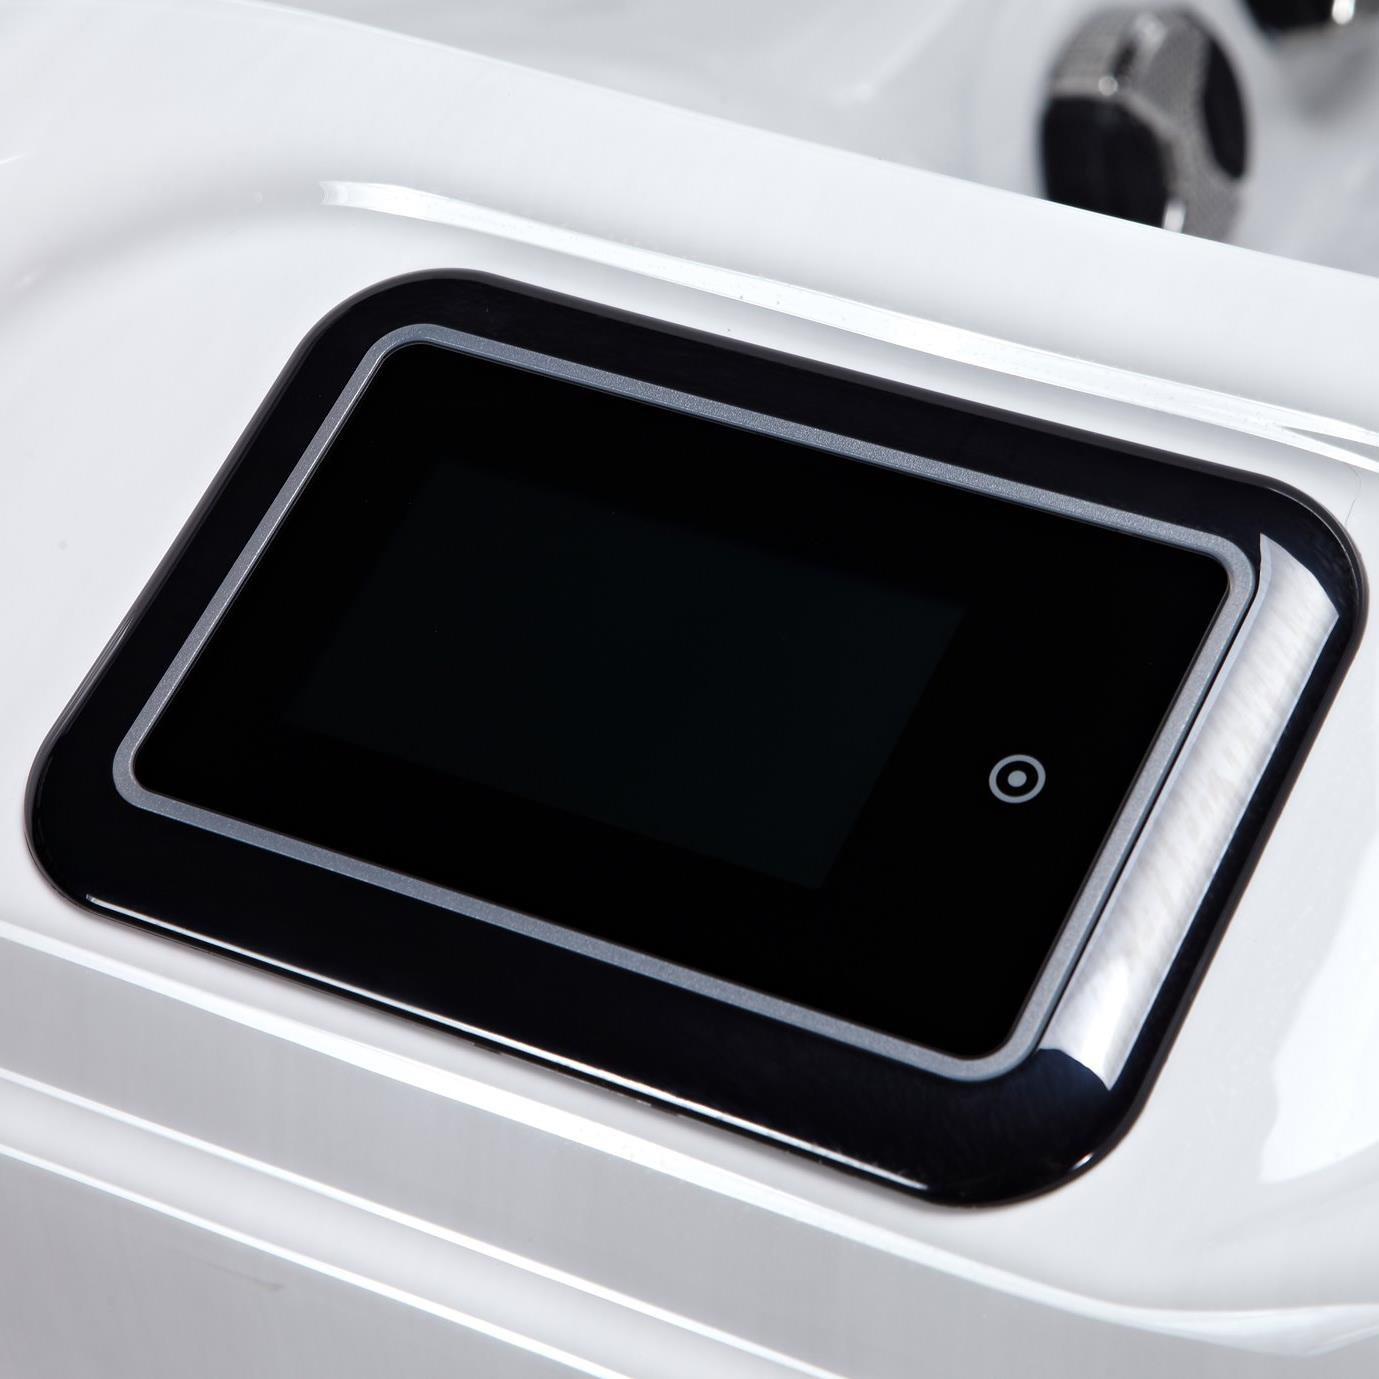 Luxury, style and comfort for 5 people   Favells Emperor range Lucius spa has 73 powerful jets, water features and LED lights.   Using 3 x 2 HP pumps the jet pressure is very strong and therefore the hydrotherapy is exceptional.  » Spas, Swim Spas & Accessories Fuengirola, Costa Del Sol, Spain